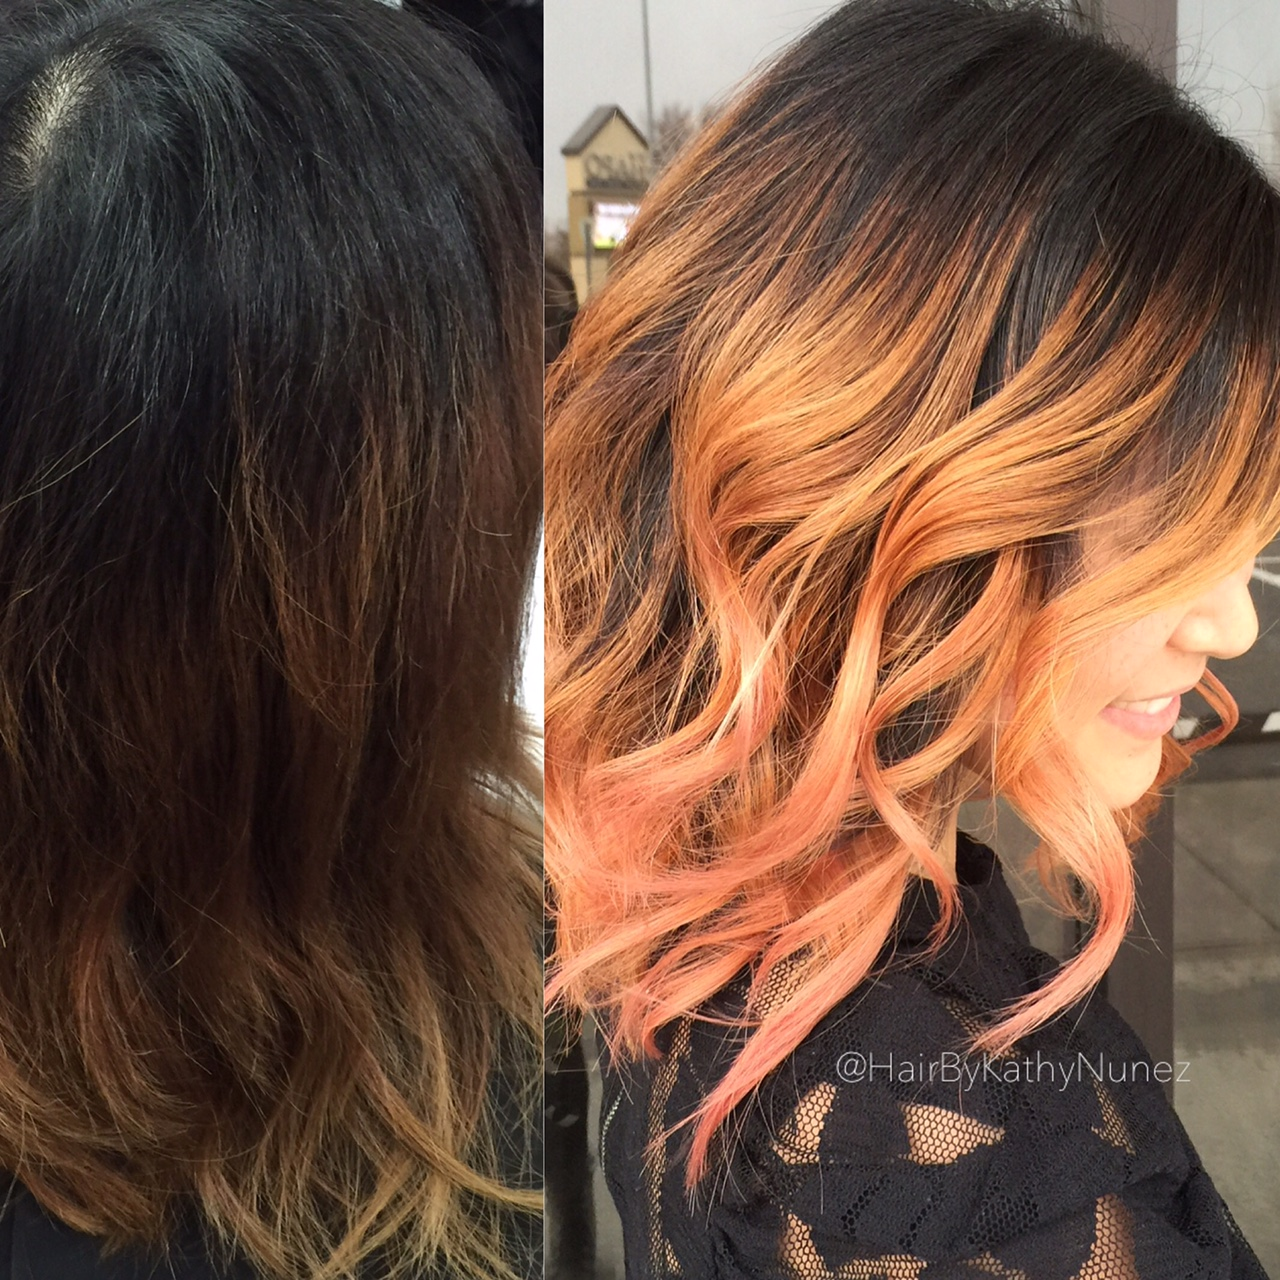 TRANSFORMATION: Faded Ombre To Apricot Sombre